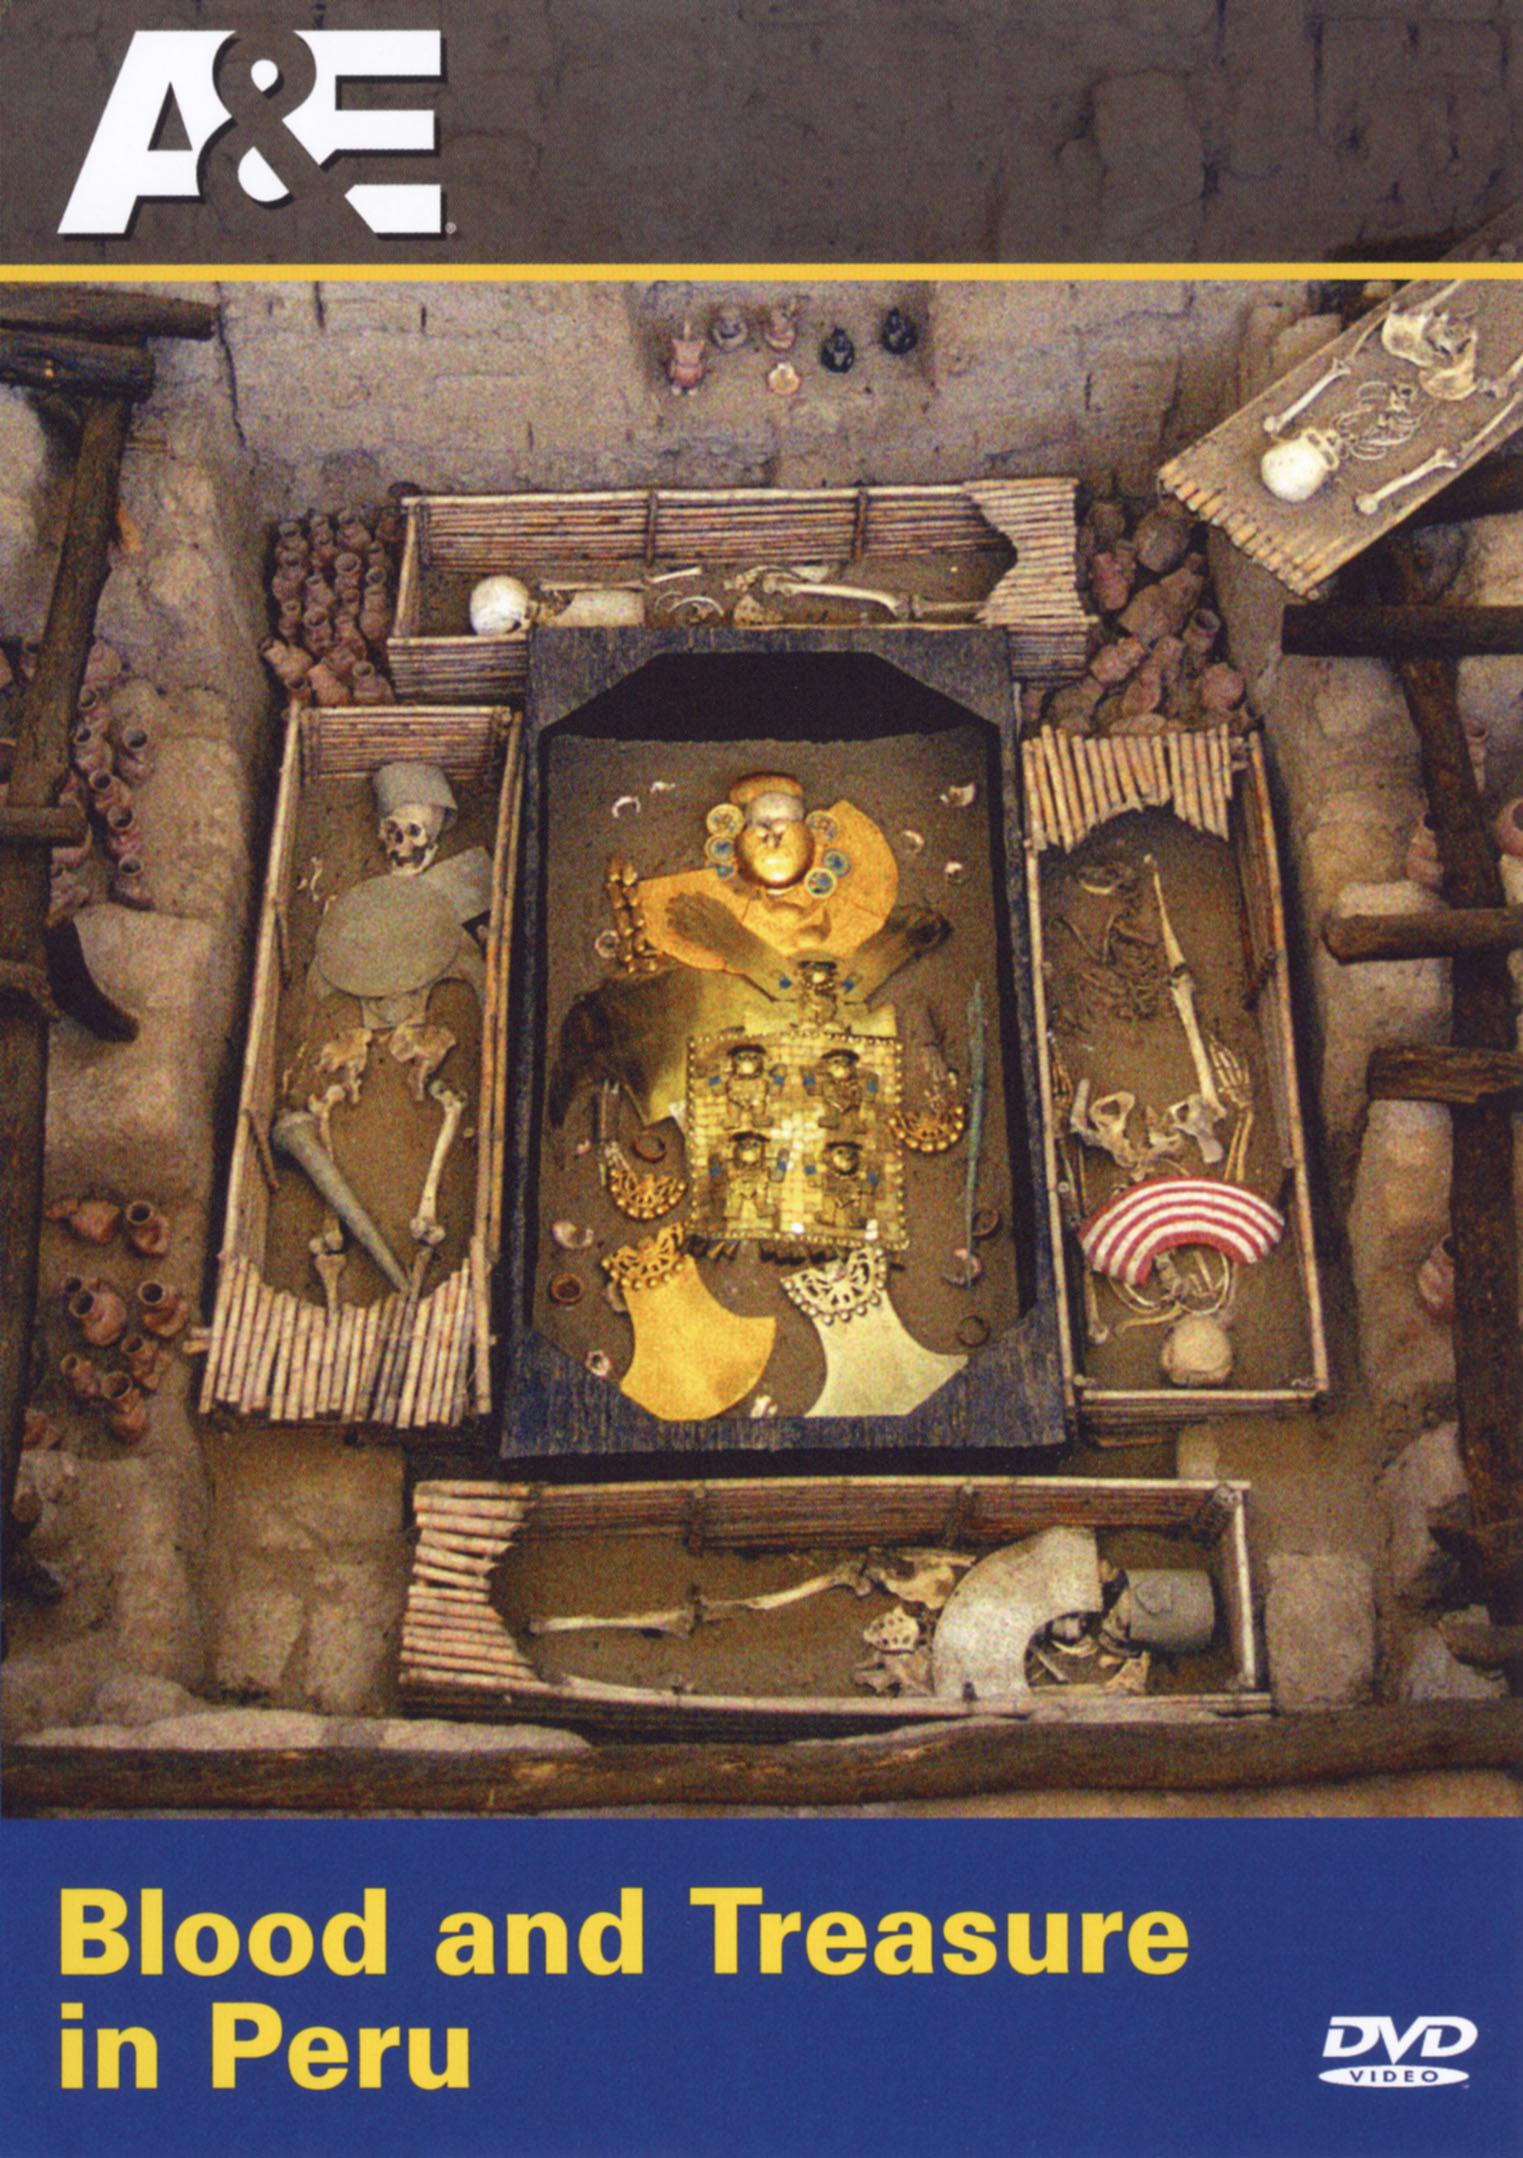 Ancient Mysteries: Blood and Treasure in Peru (1995)